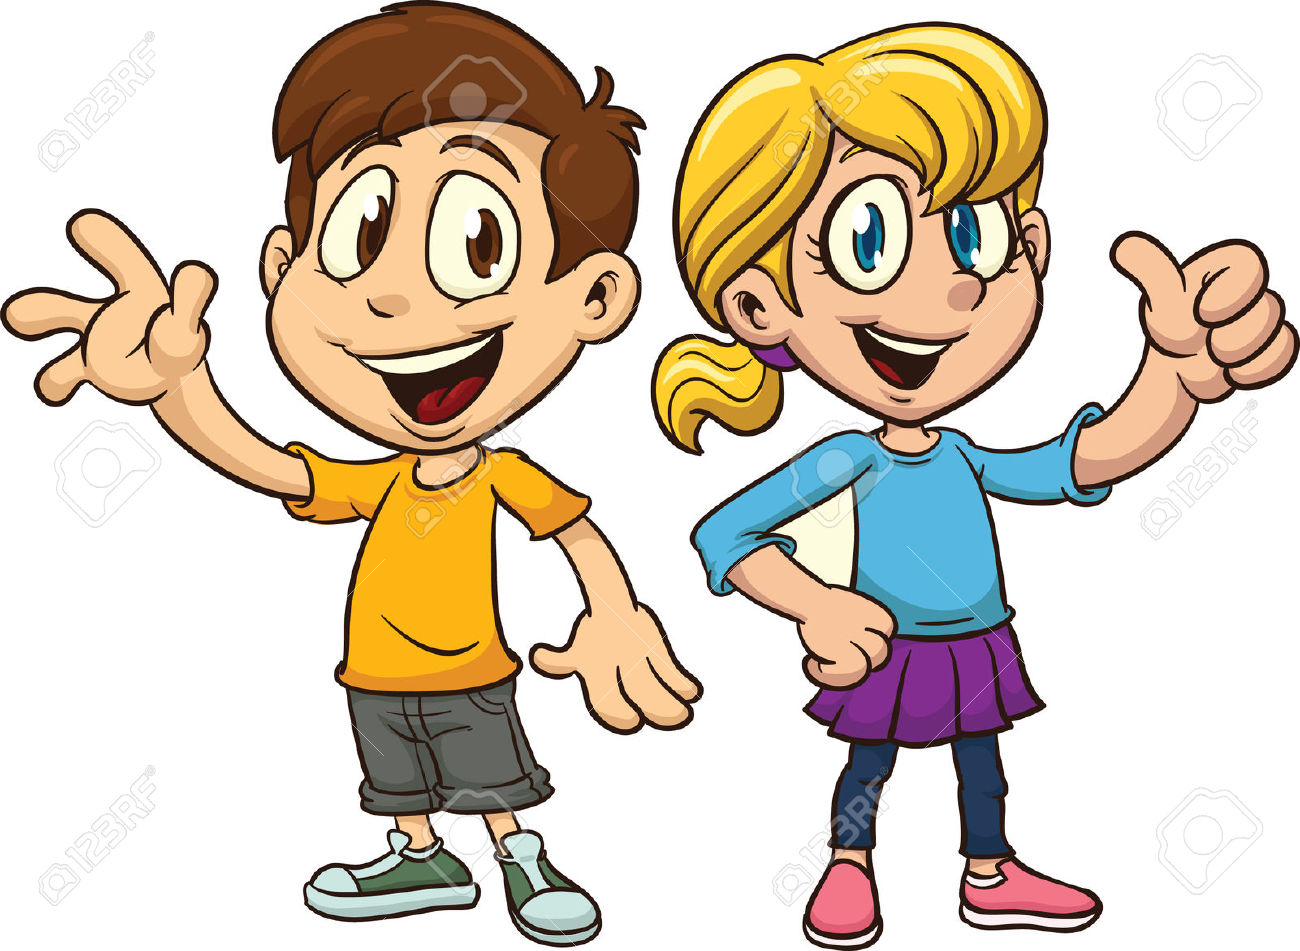 Happy boy and girl clipart graphic royalty free 79+ Boy And Girl Clip Art | ClipartLook graphic royalty free